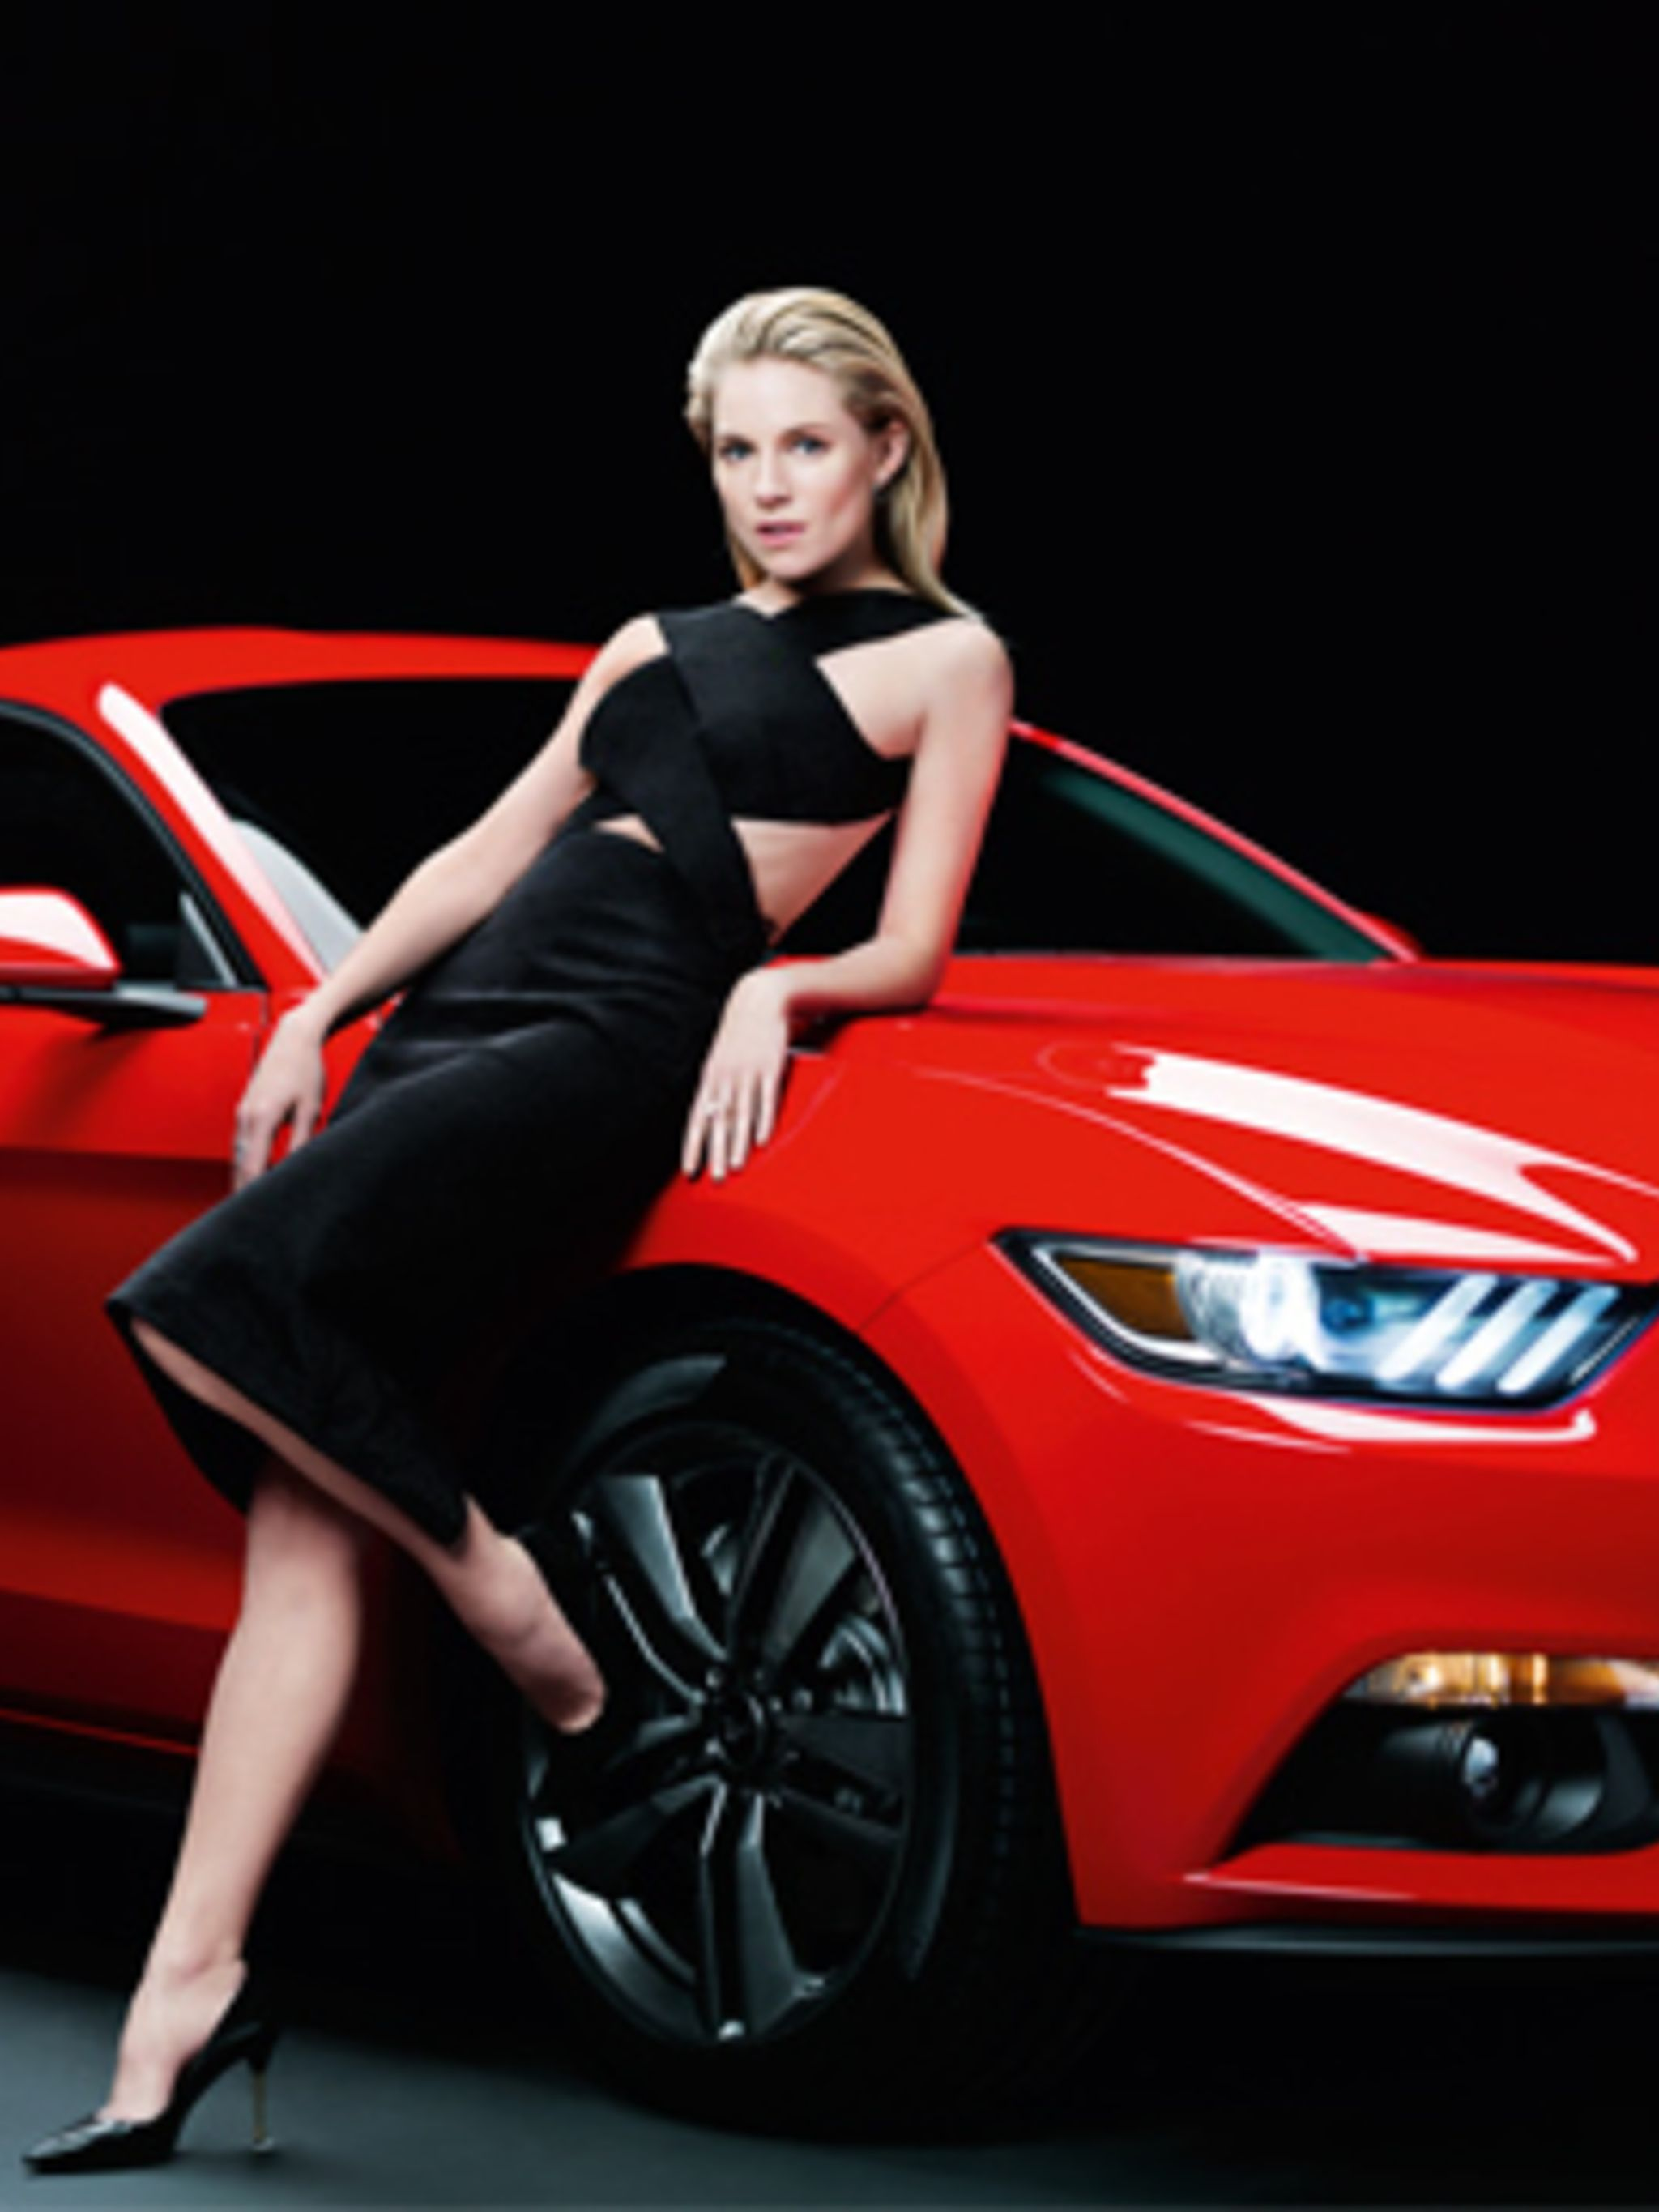 Rankin sienna and a ford mustang